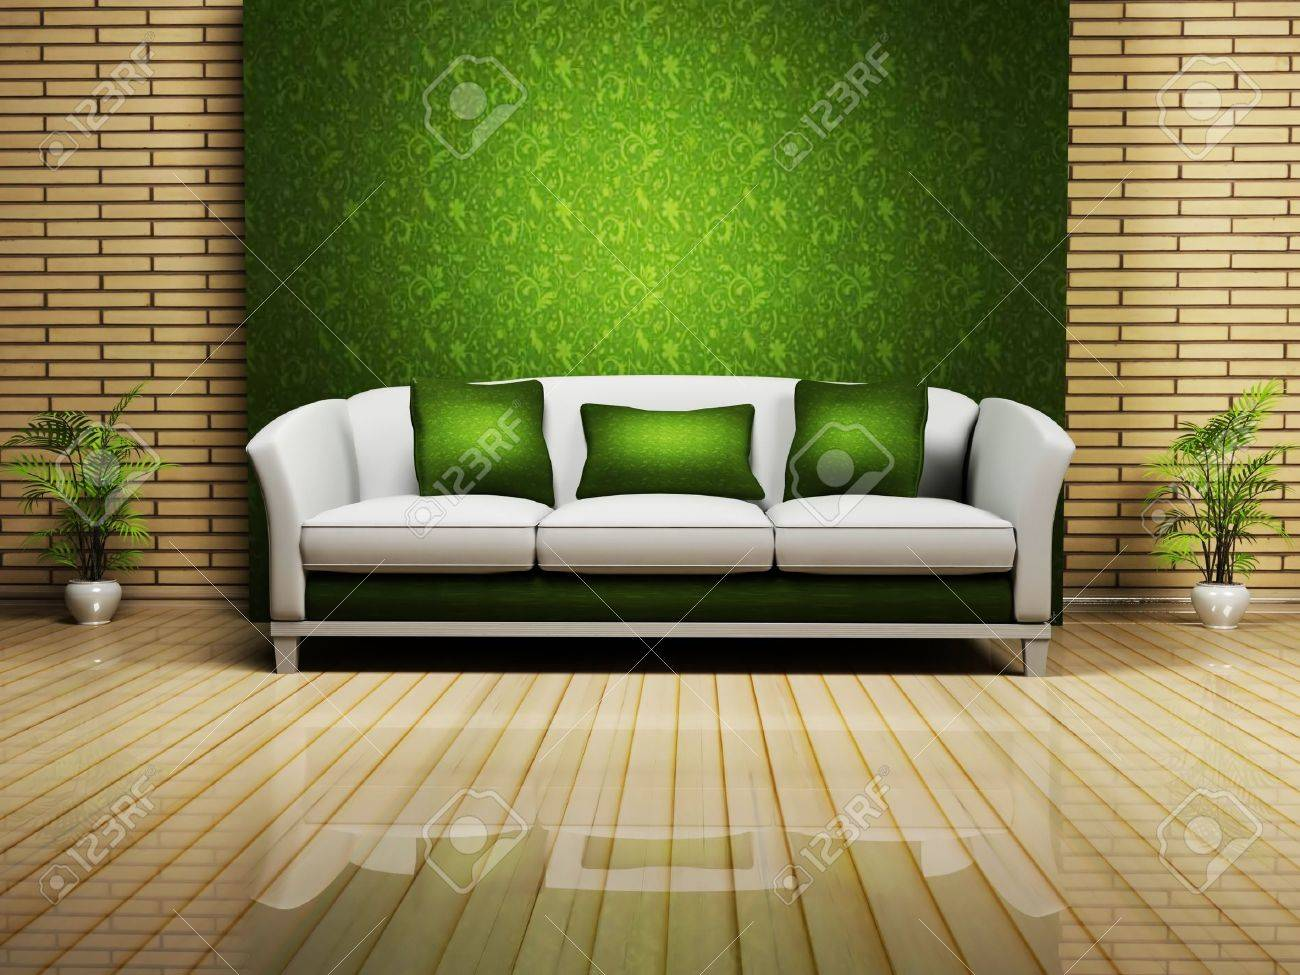 Nice Sofa Modern Interior Design With A Nice Sofa And A Plant Rendering